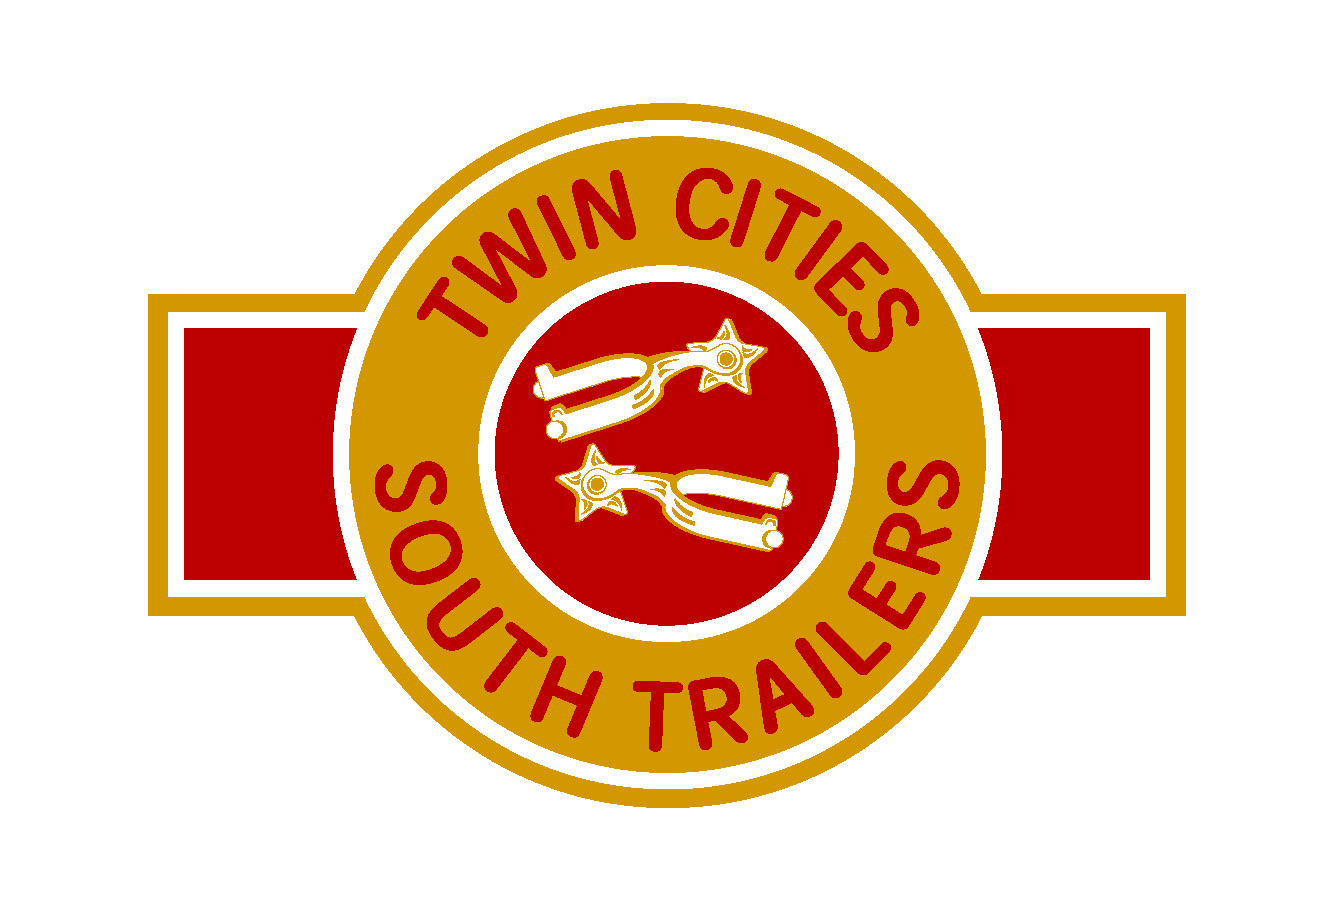 Twin Cities South Trailers